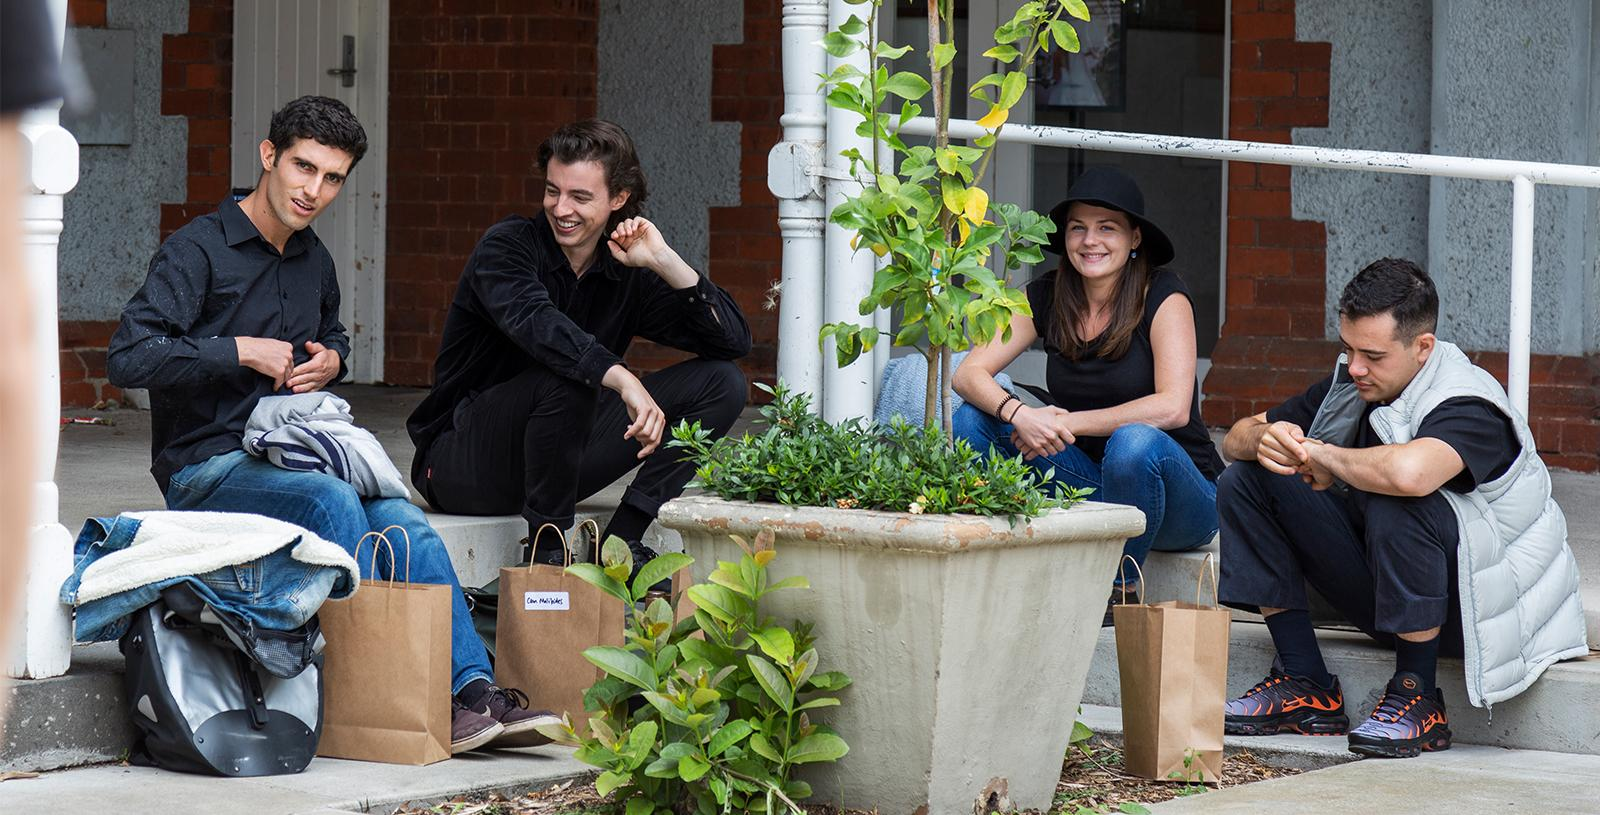 Musicians on their break – Abbotsford Convent Rosina Courtyard 8